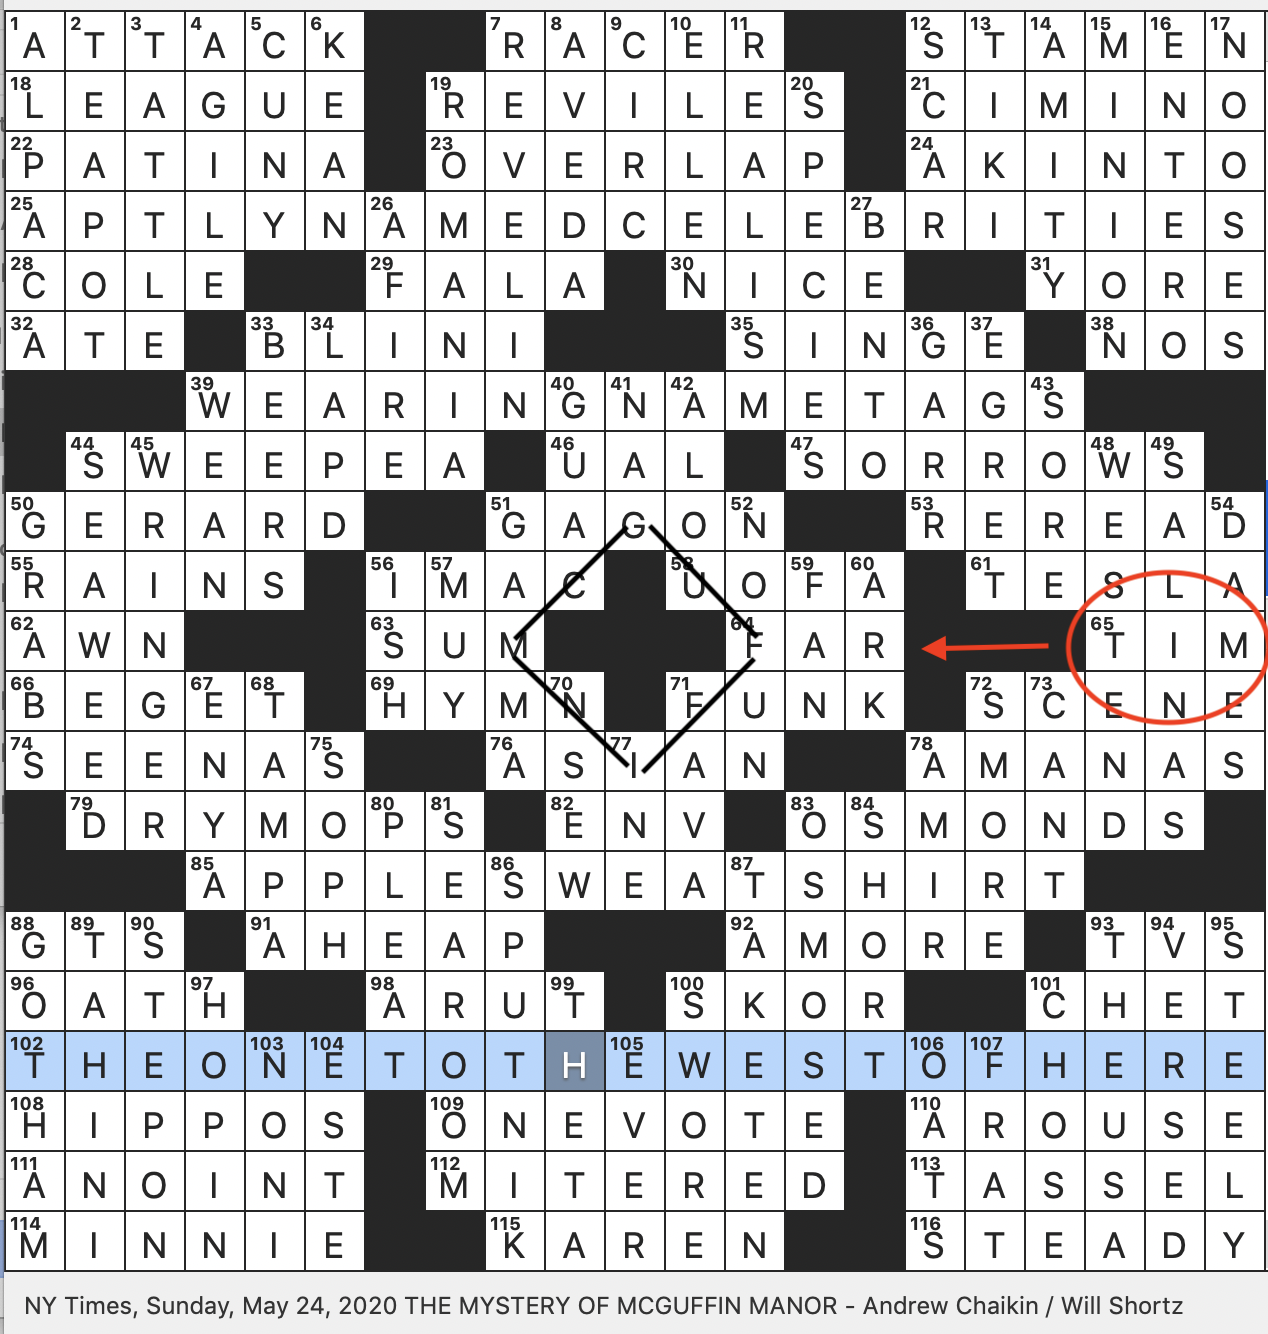 Rex Parker Does The Nyt Crossword Puzzle Mystery Of Mcguffin Manor Sun 5 24 20 Sprint Competitor Tech Debut Of 1998 Hungry Game Characters Style For Edward Hopper George